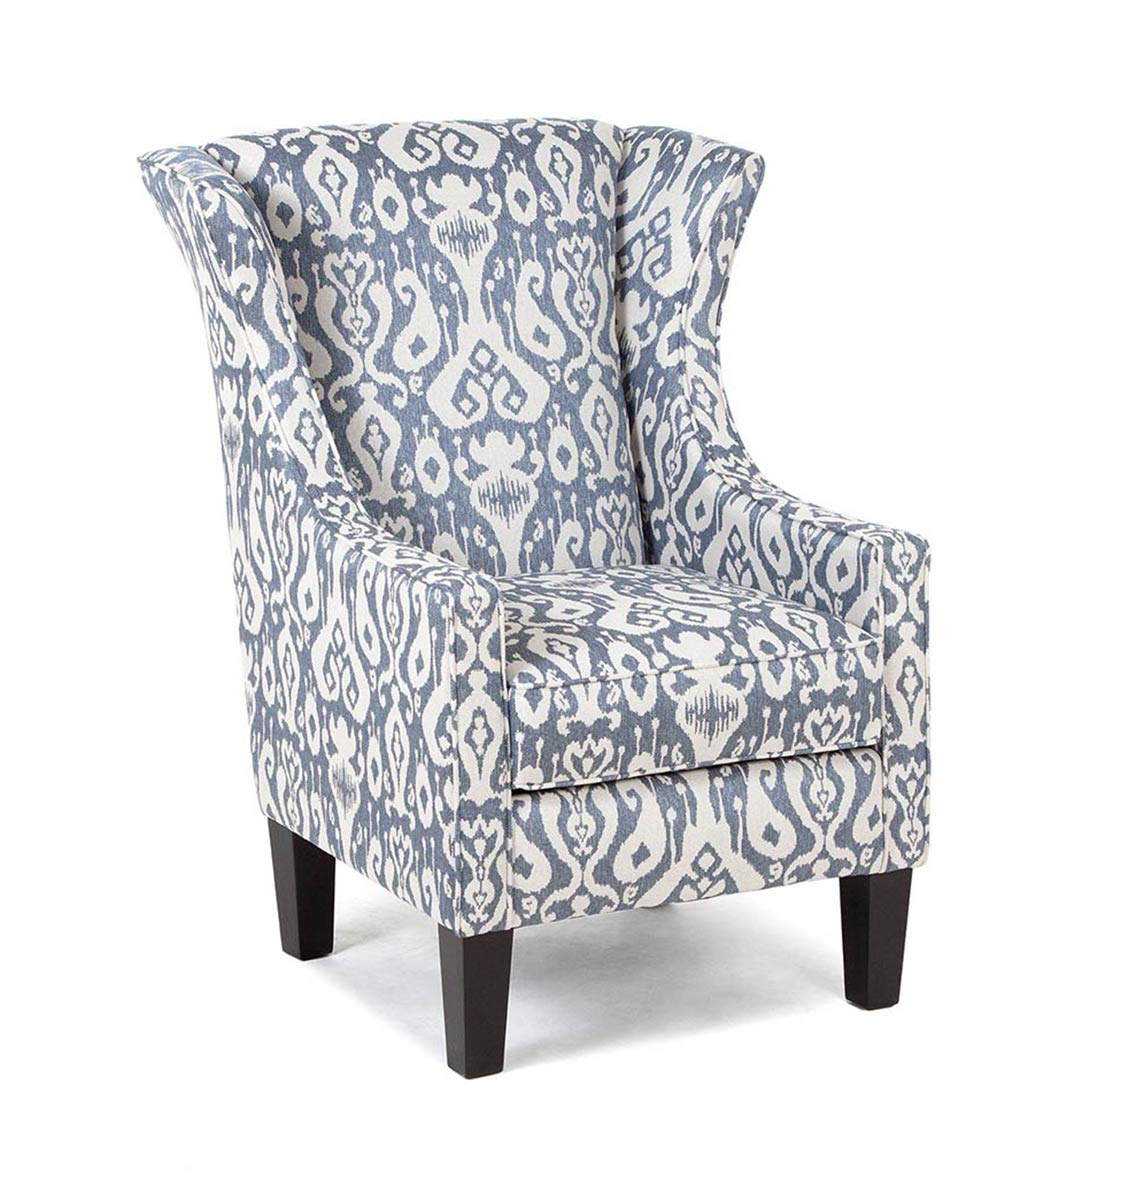 Denim Chairs Chelsea Home Jubilee Accent Chair Denim Chf 791460 C Cd